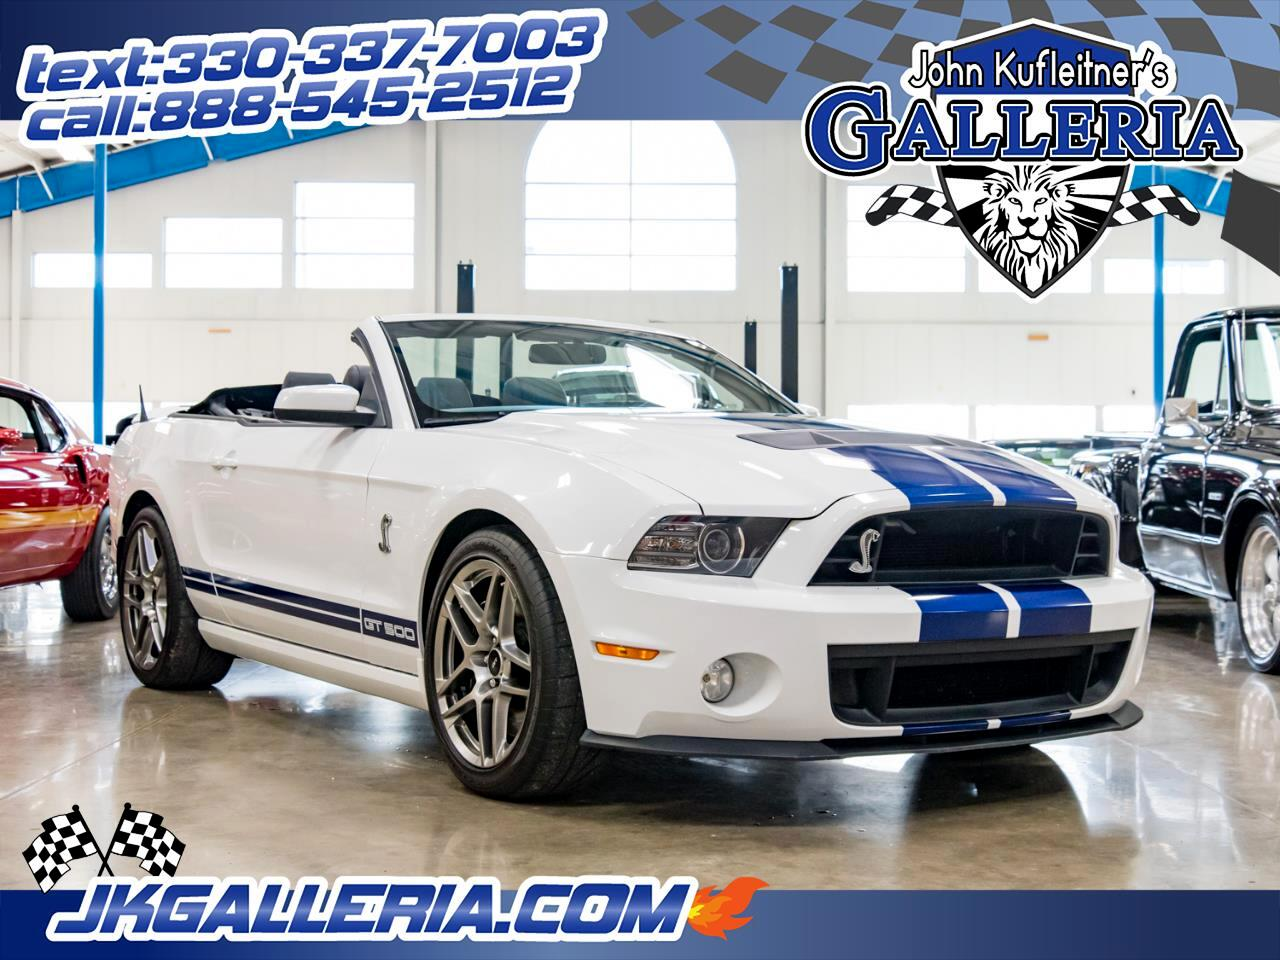 2014 Ford Mustang 2dr Conv Shelby GT500